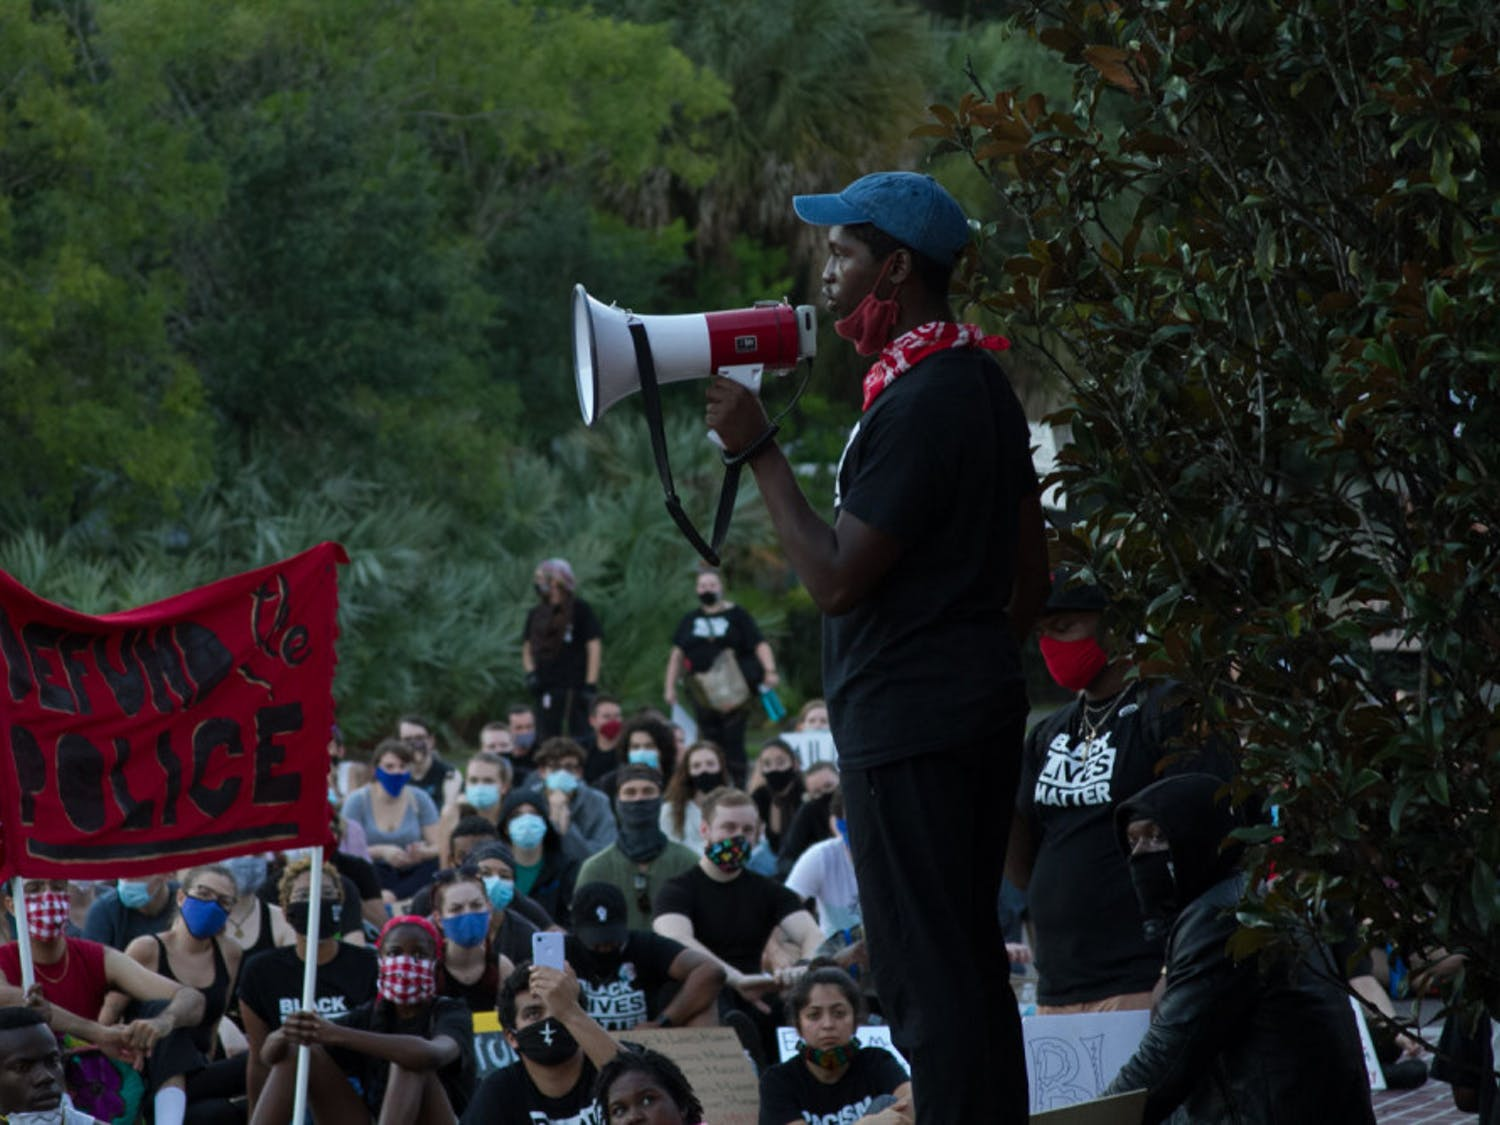 """At a June 13 demonstration near the Gainesville Police Department, protesters chant """"No justice, no peace,"""" and a sign reading """"Defund The Police"""" can be seen in the background."""